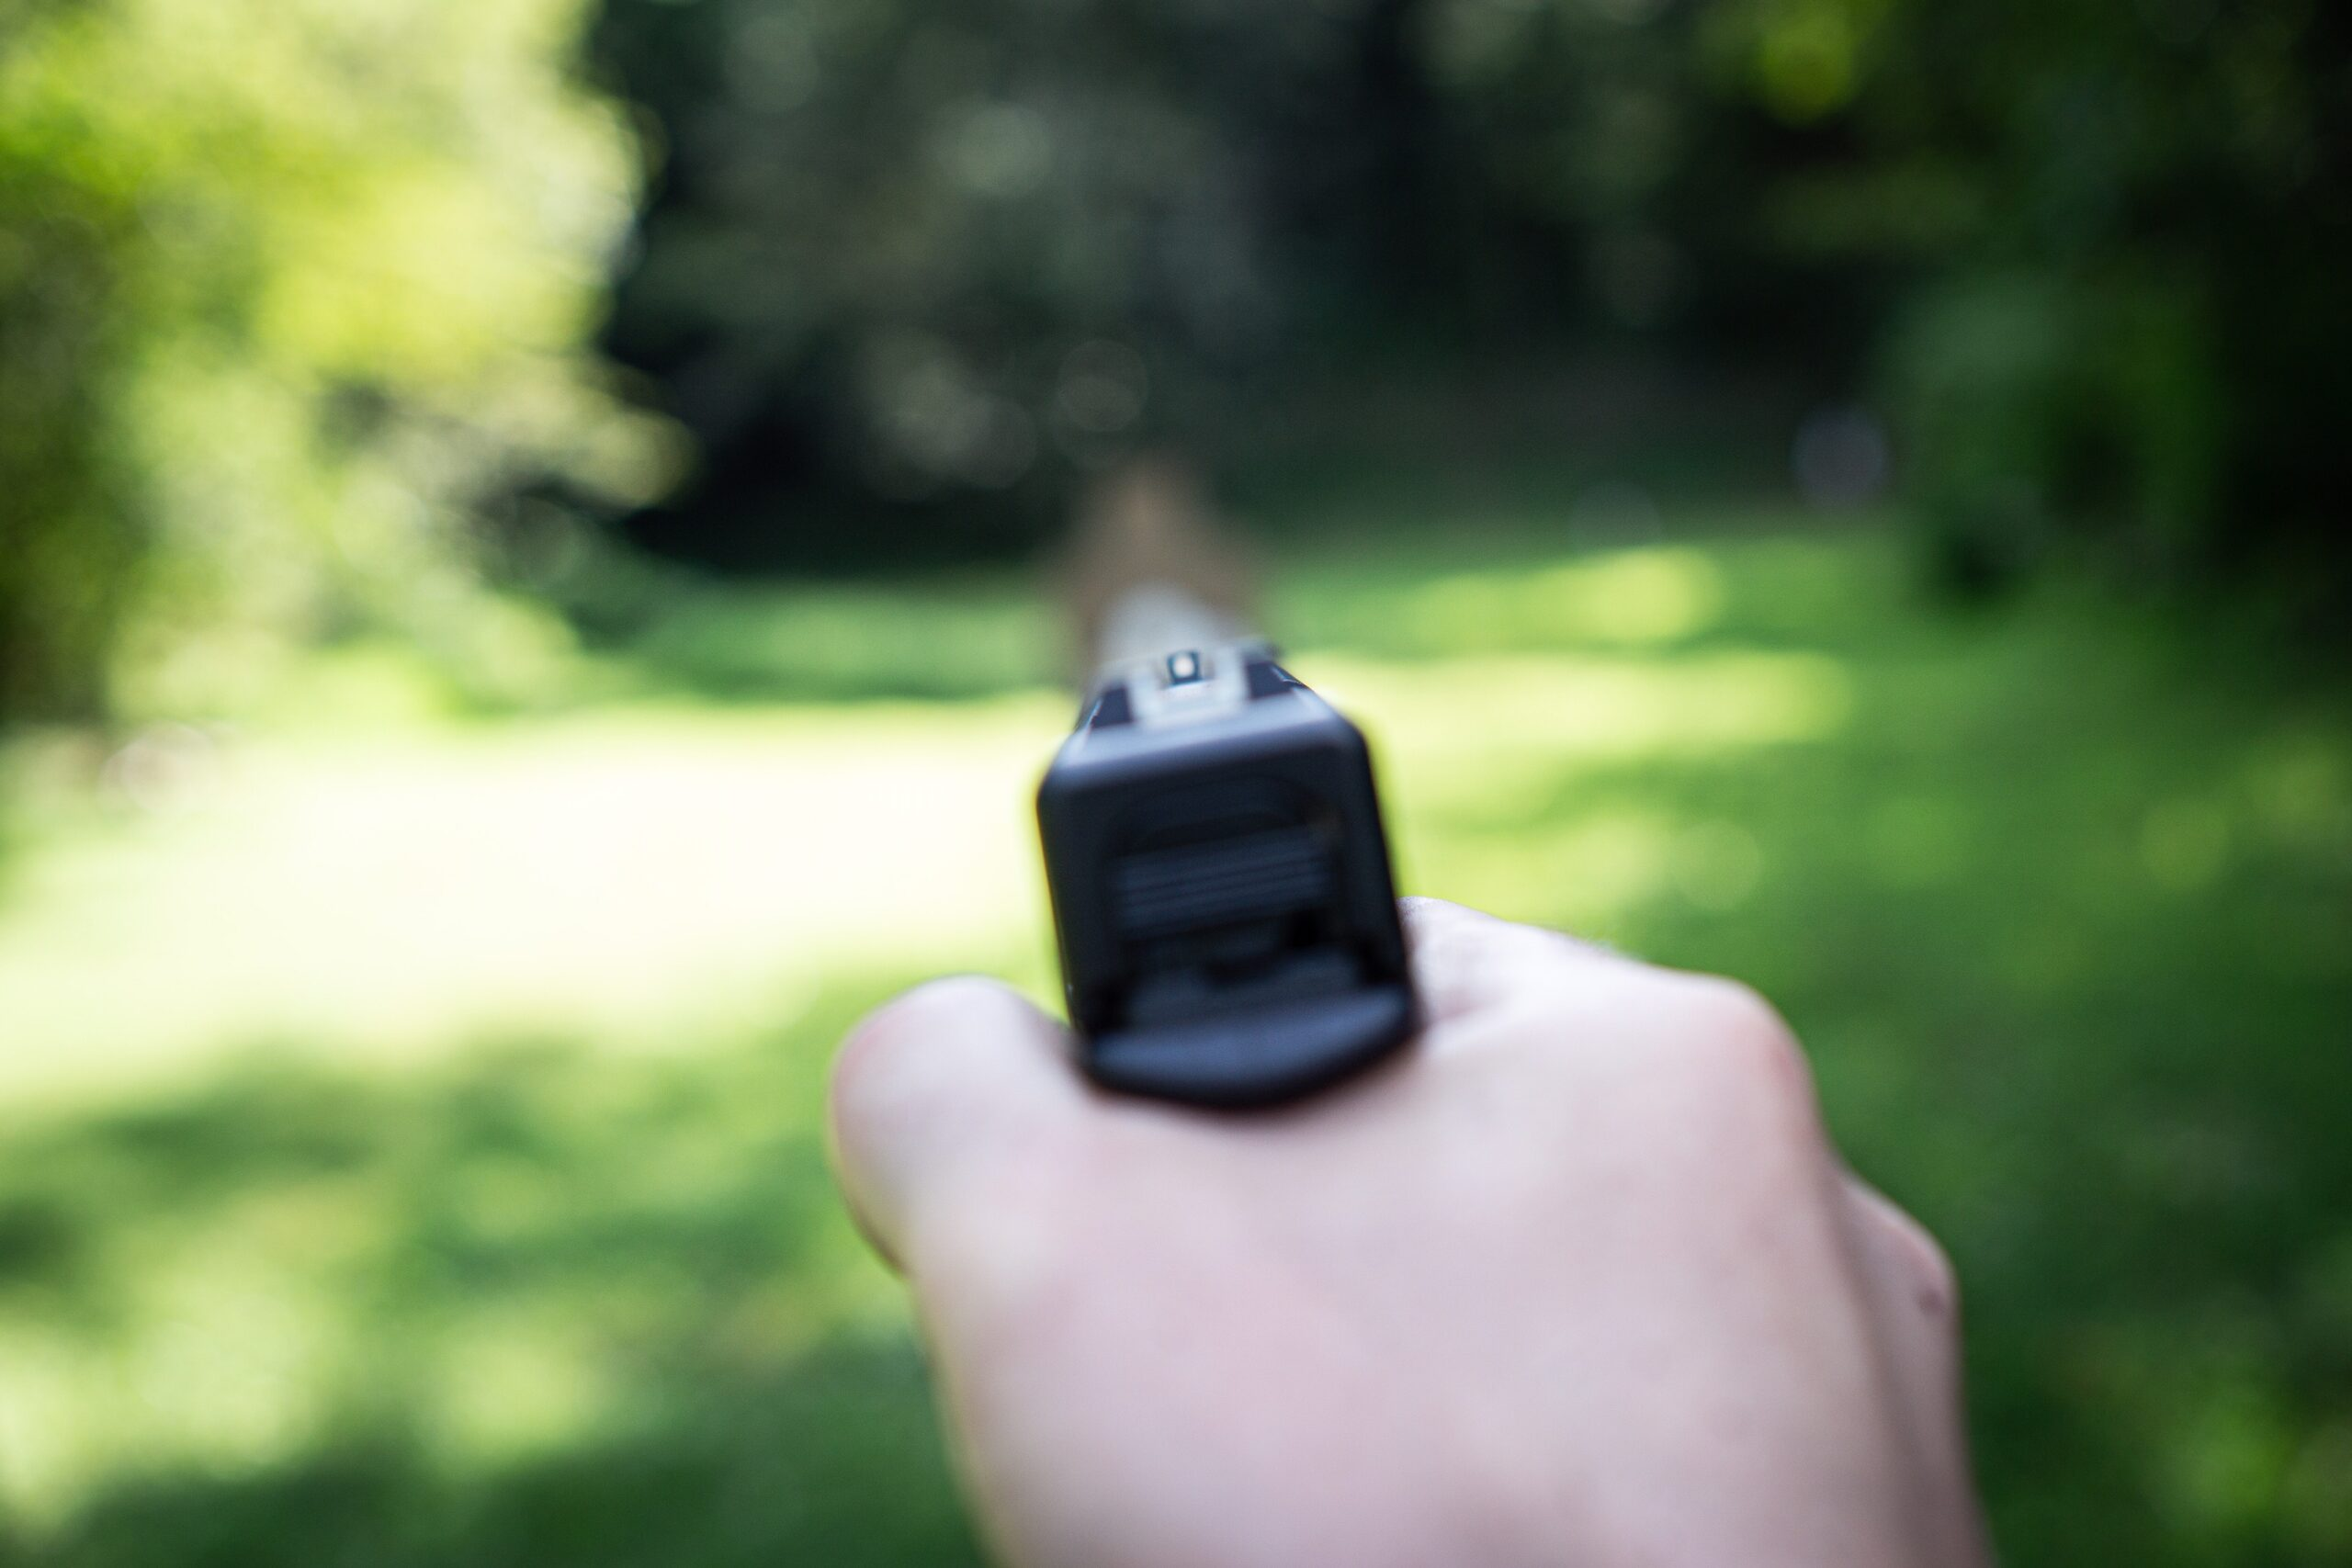 Glock 21 SF Sight Picture